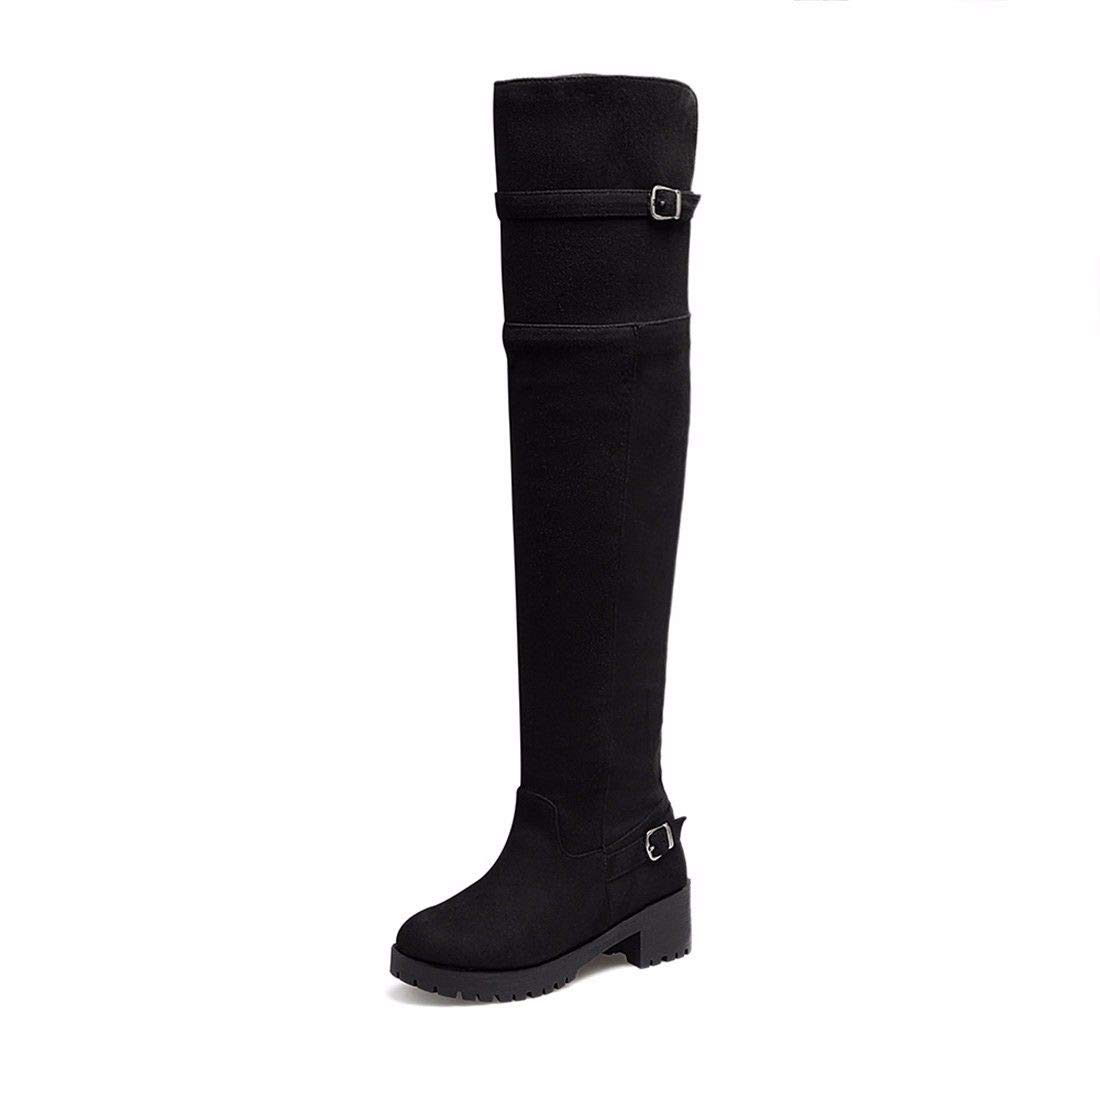 Europe Europe Europe and The United States Pu Suede Belt Buckle Boots Knee high Boots with Thick Bottom Code B07H21VTKD Boots 27d561